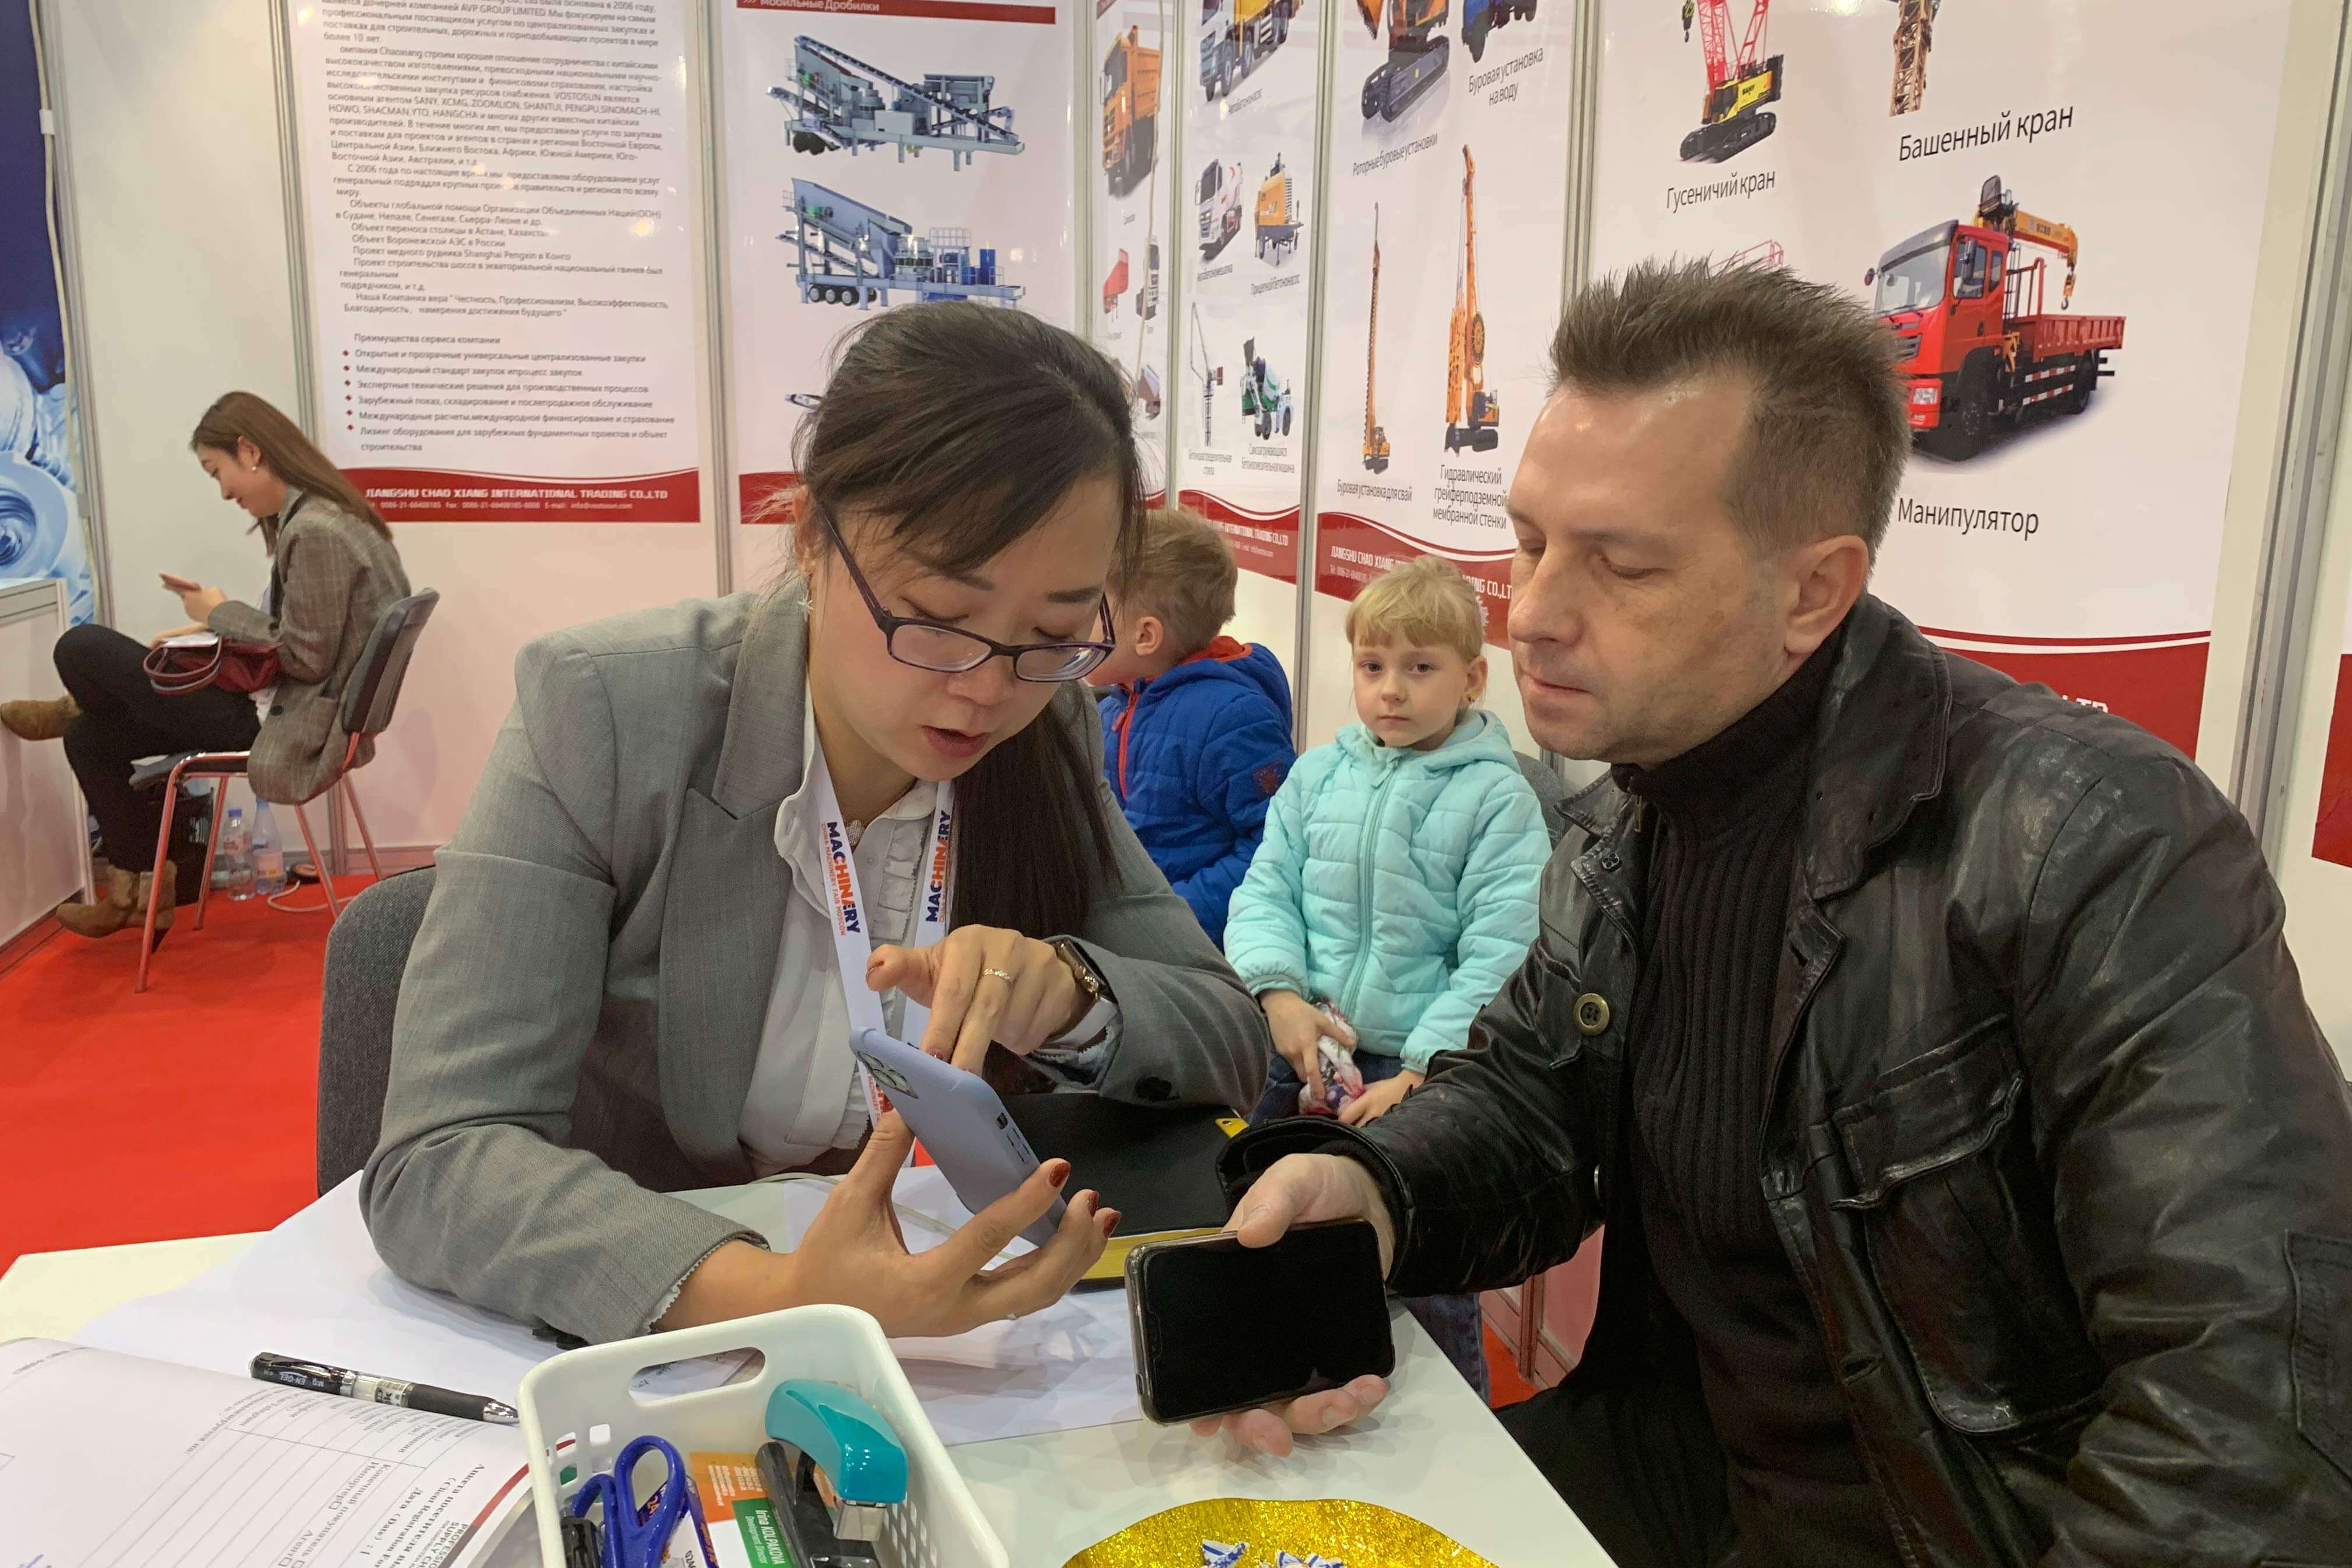 October 29th to 31st, 2019, we participated in the Russian exhibition